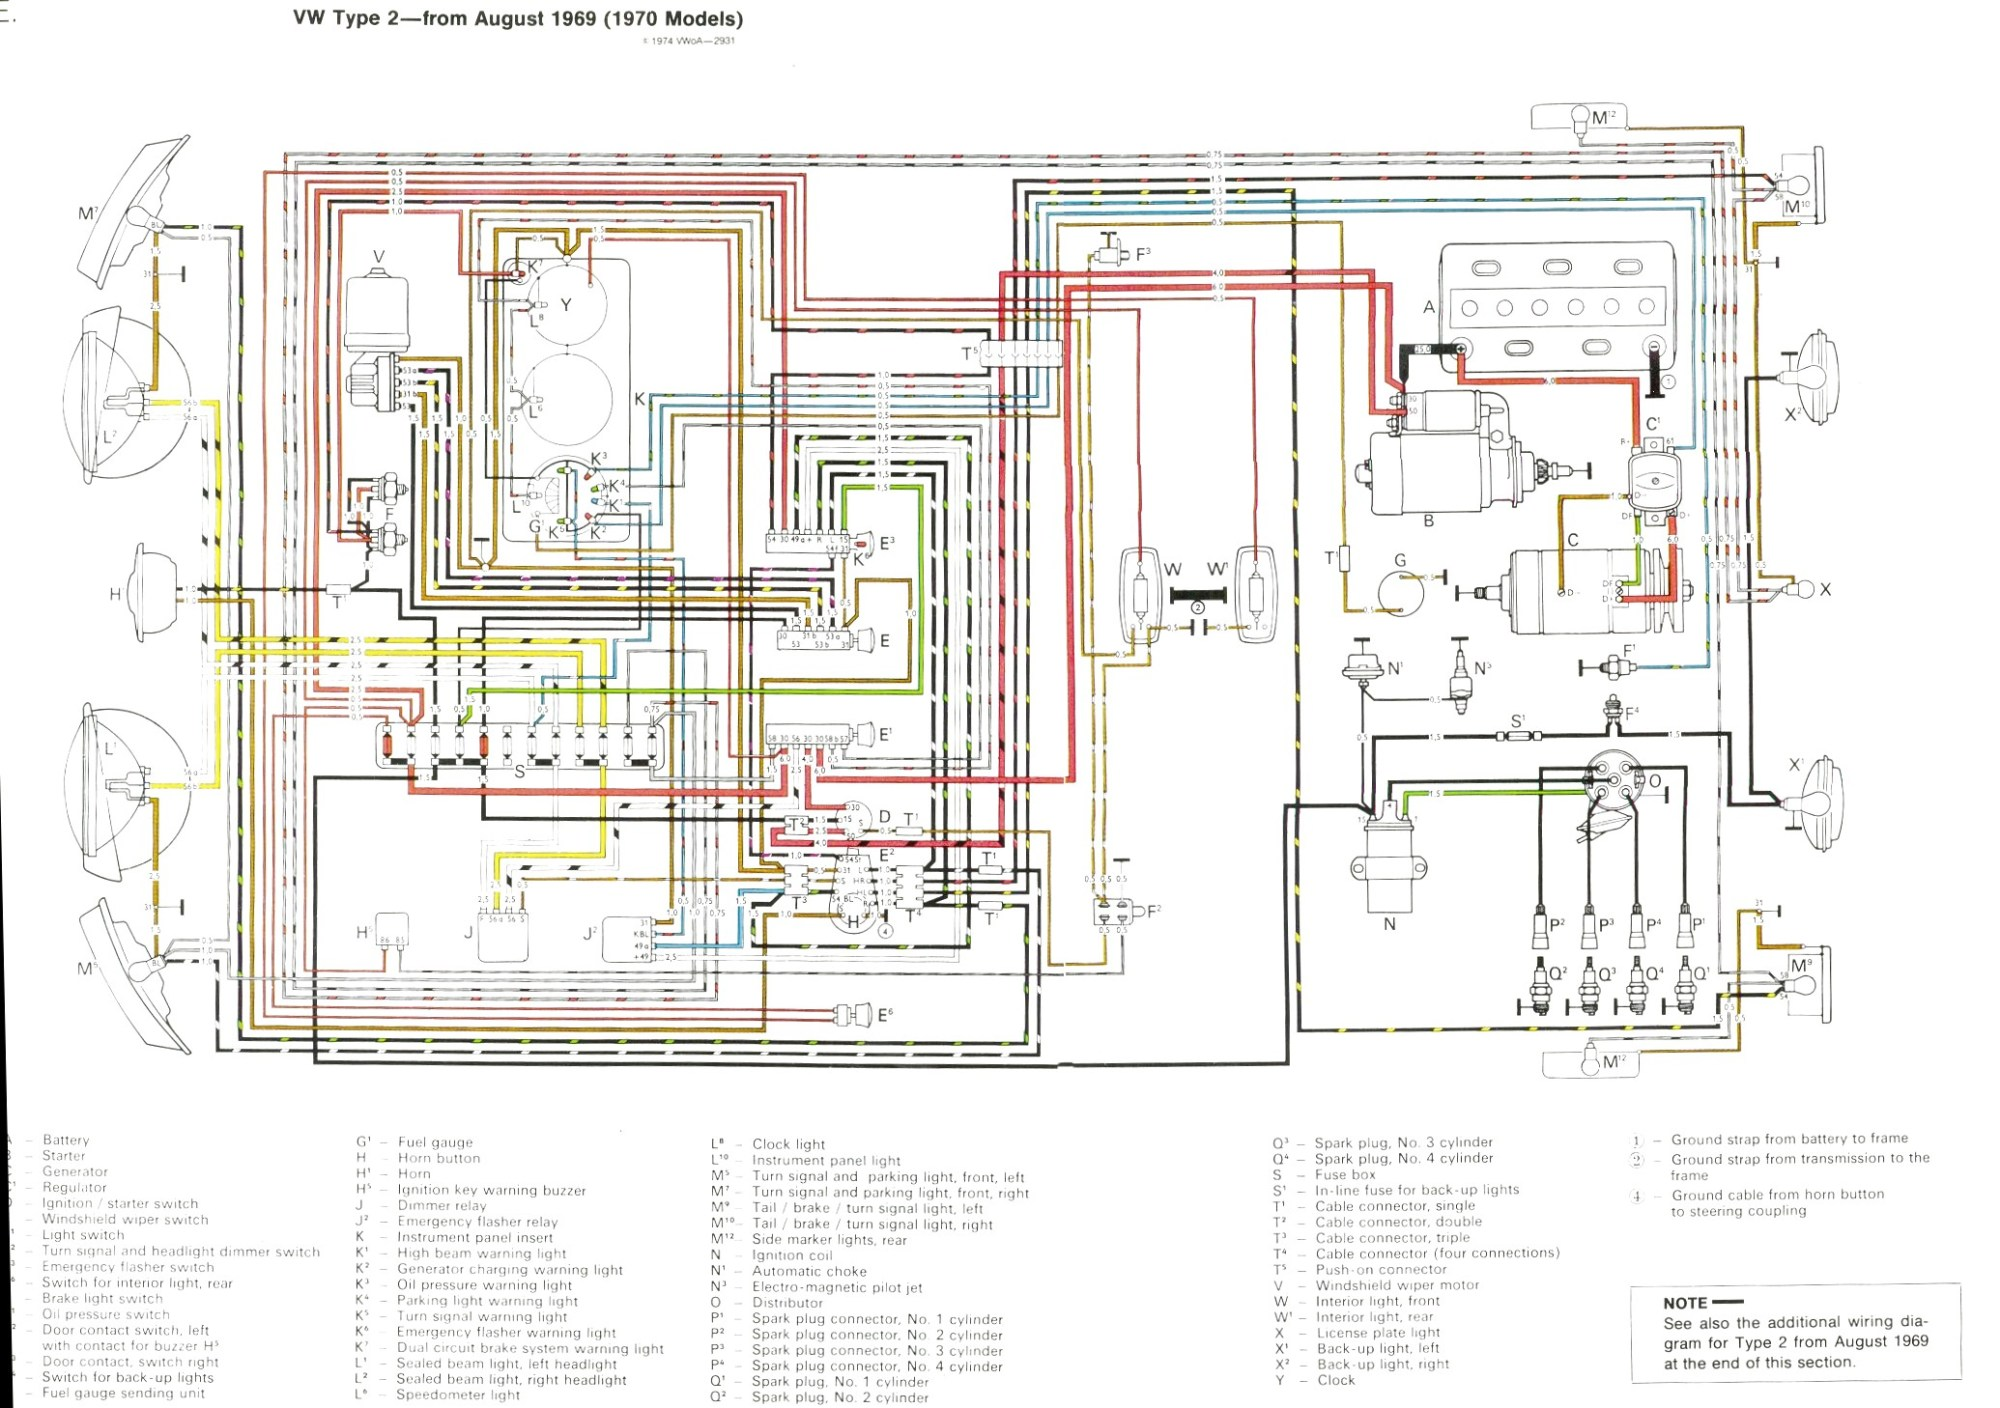 hight resolution of baywindow fusebox layout 1998 vw beetle fuse box location august 1969 1970 models